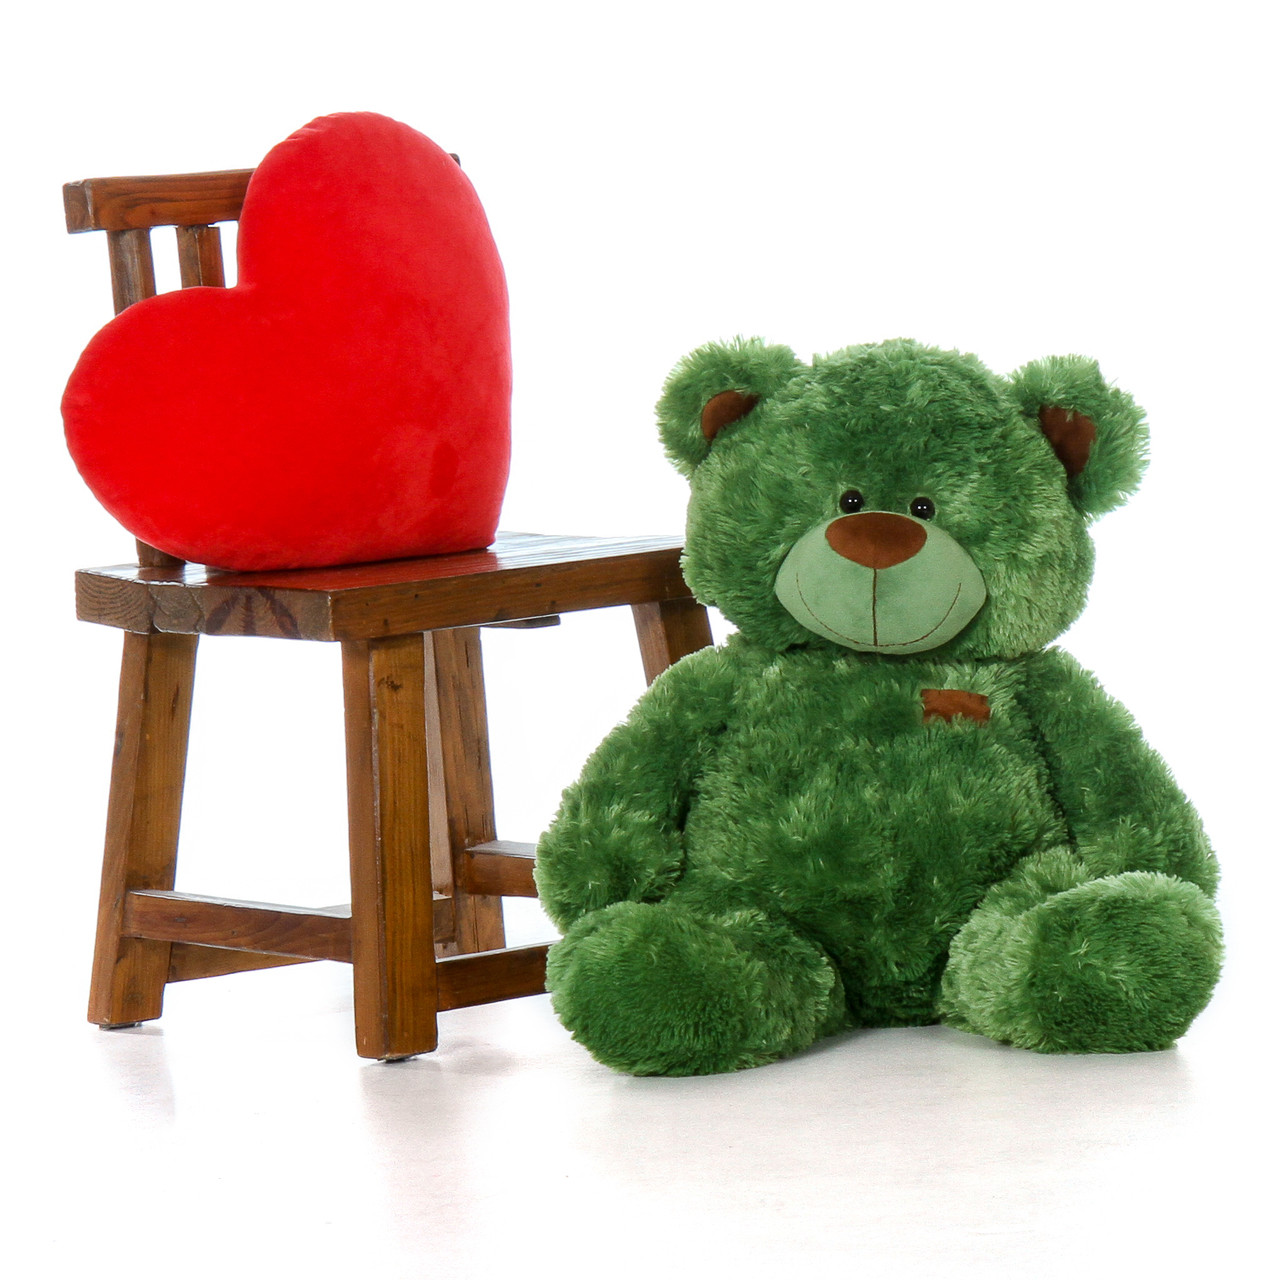 Big Green Teddy Bear in Sitting Position